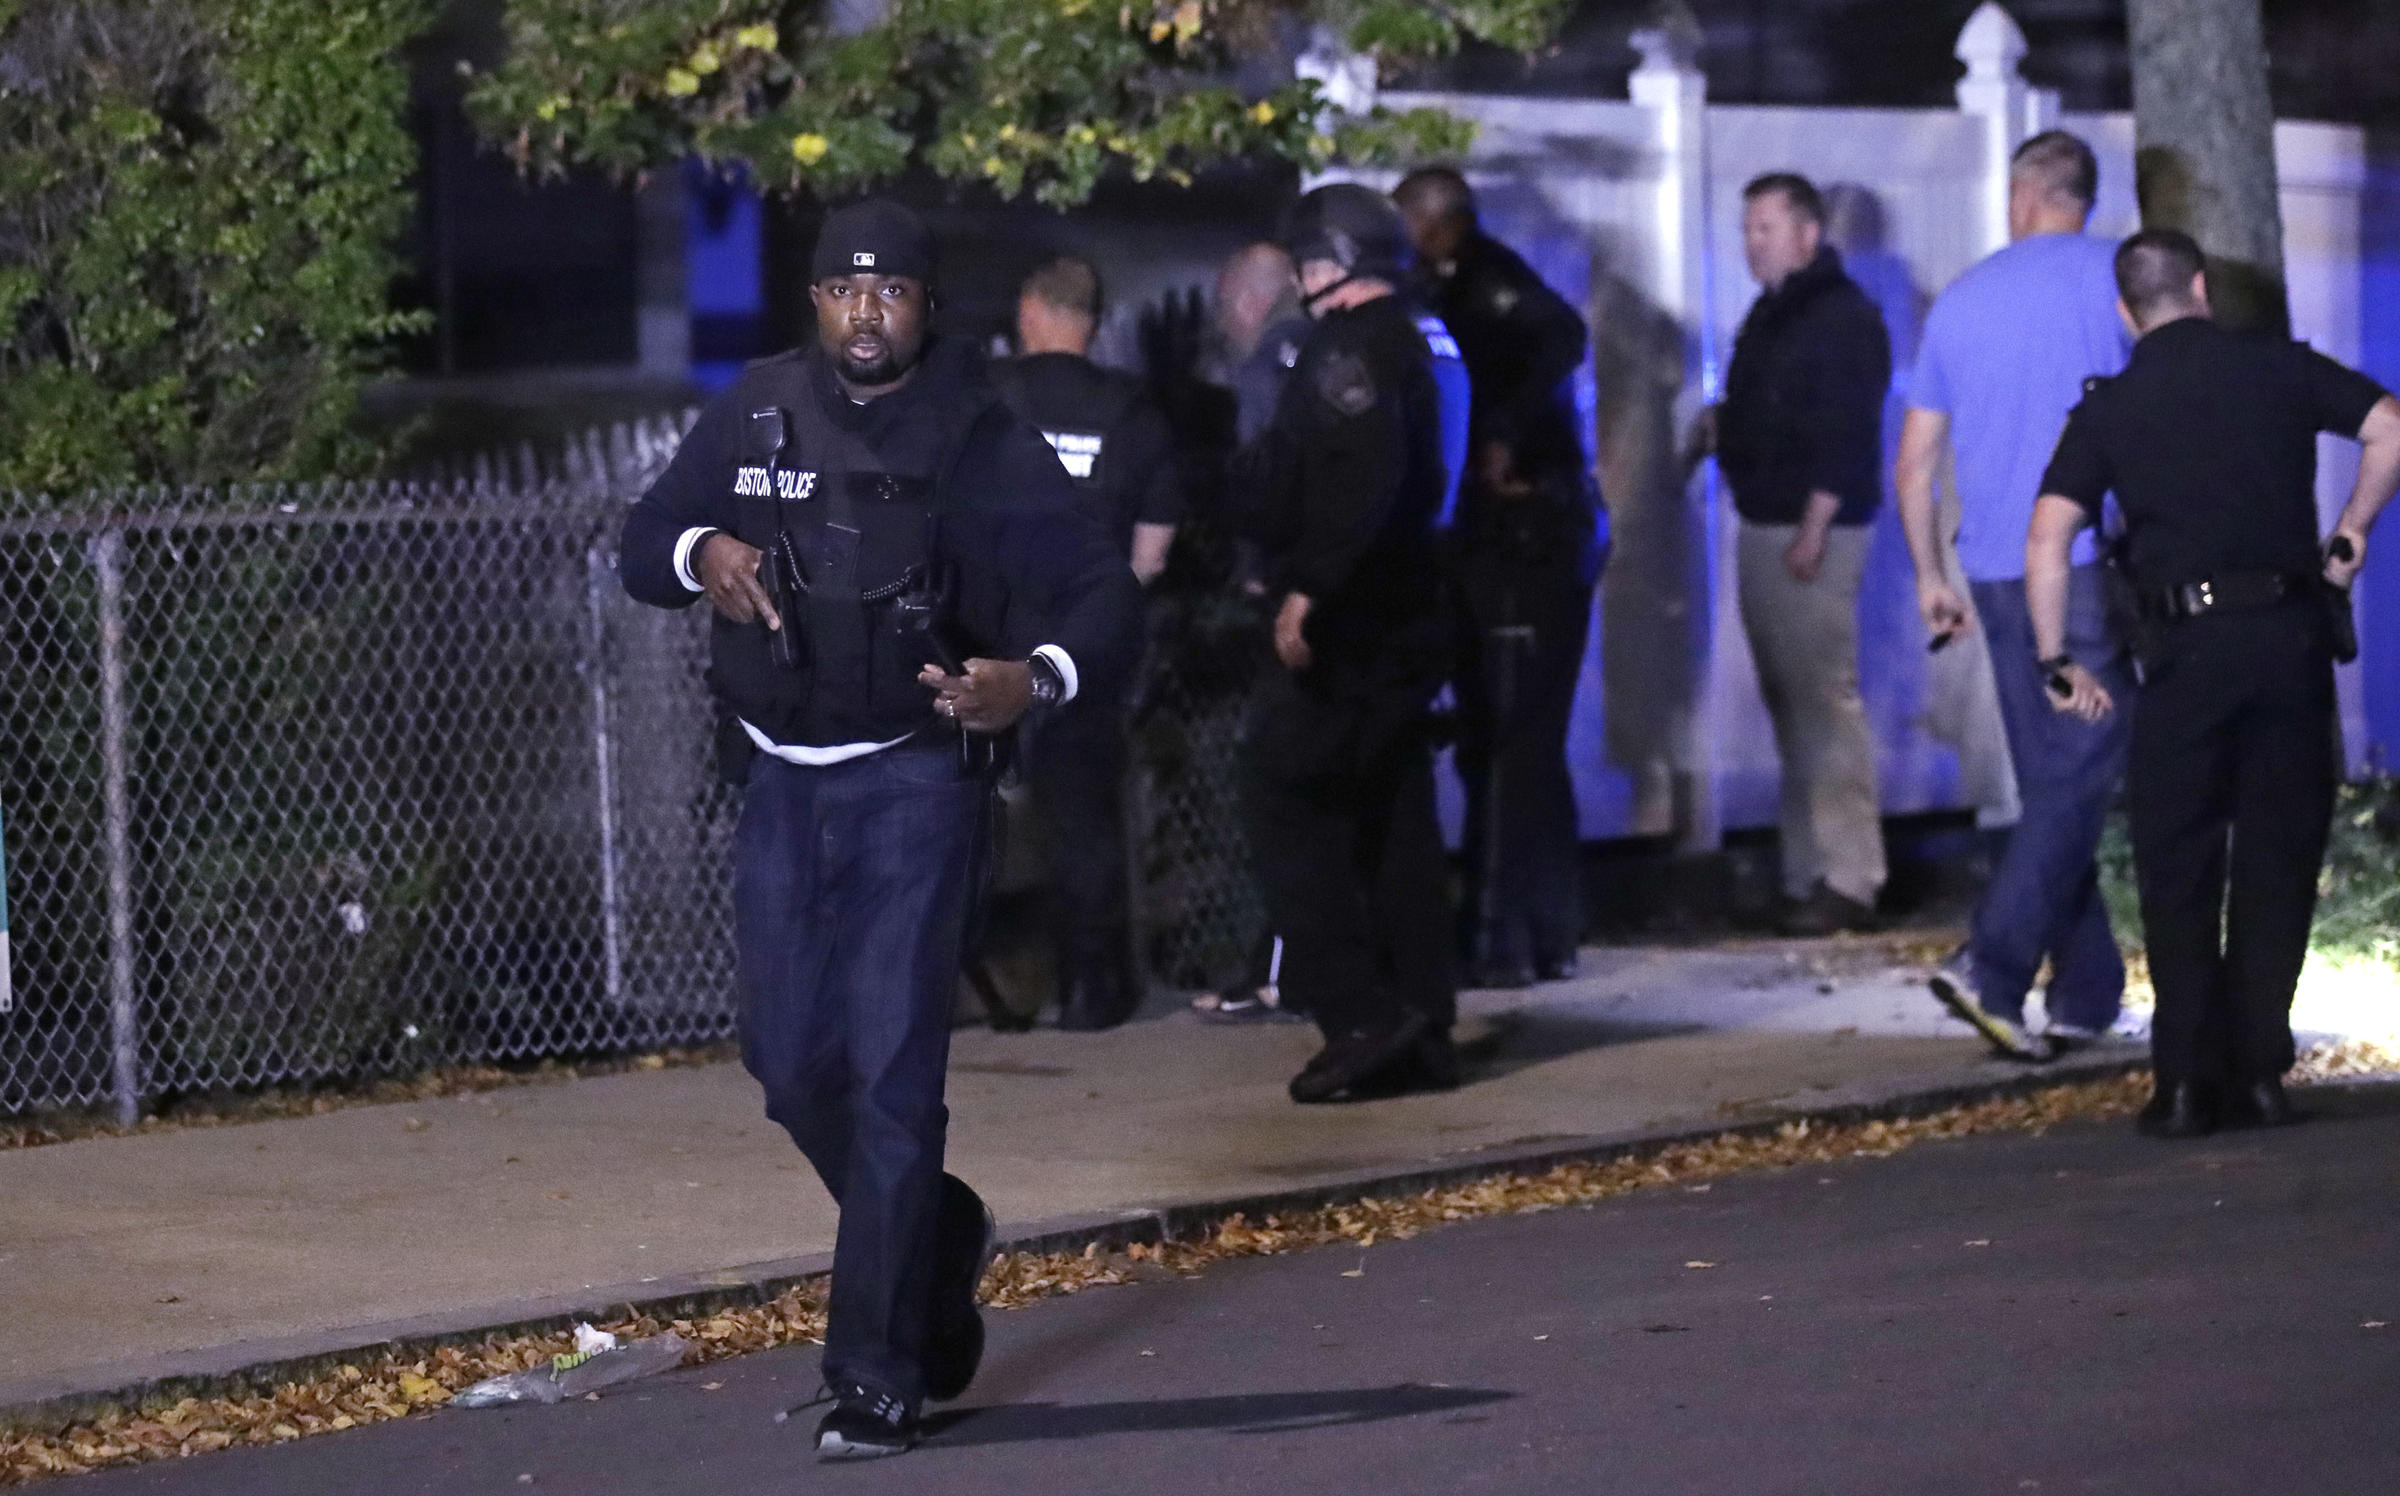 Boston police officers wounded in shooting; suspect dead